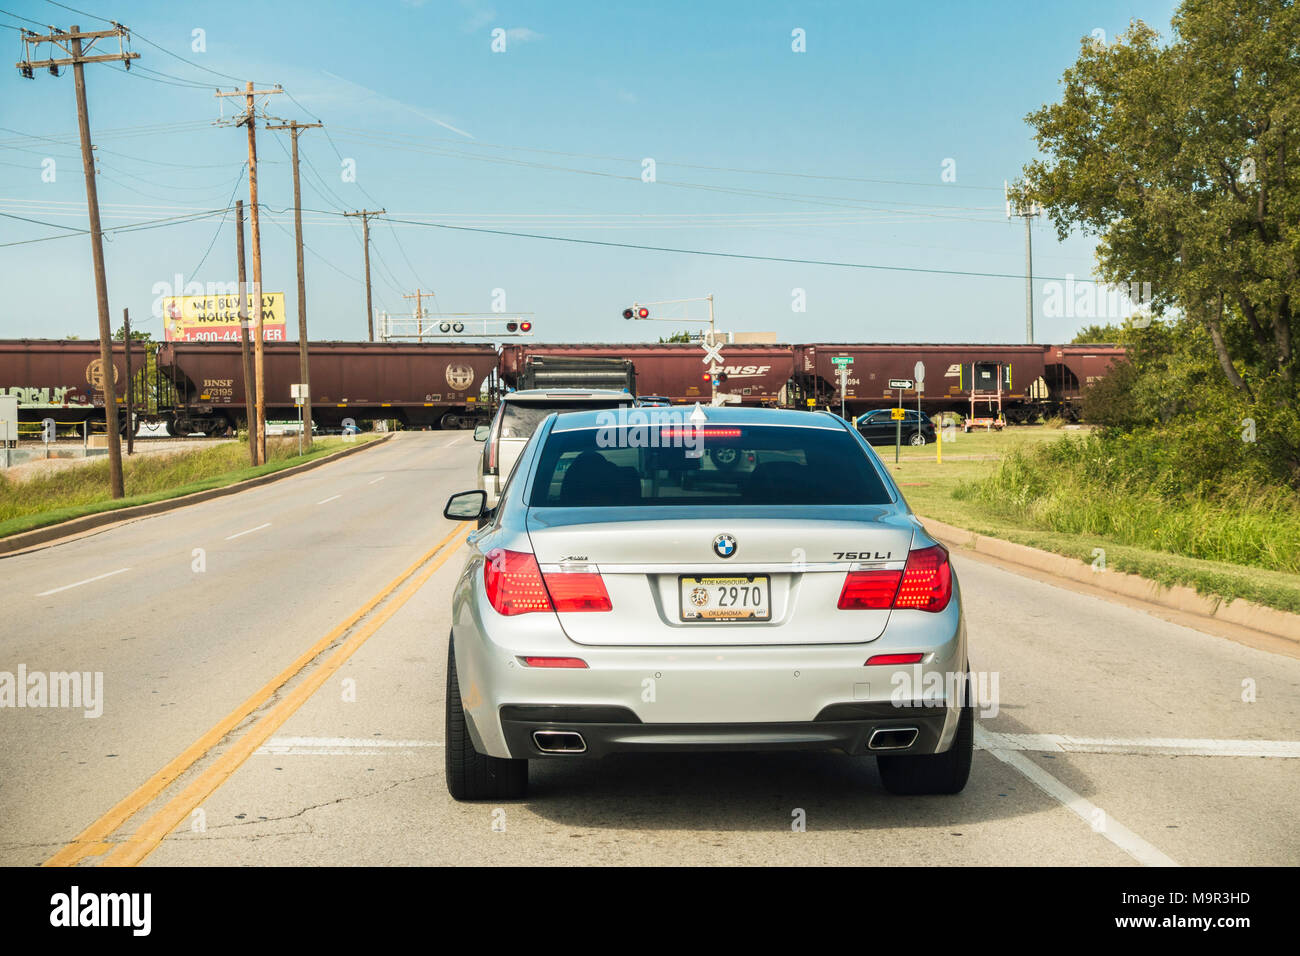 A line of automobiles waiting for a train to cross the road in Oklahoma City, Oklahoma, USA. - Stock Image